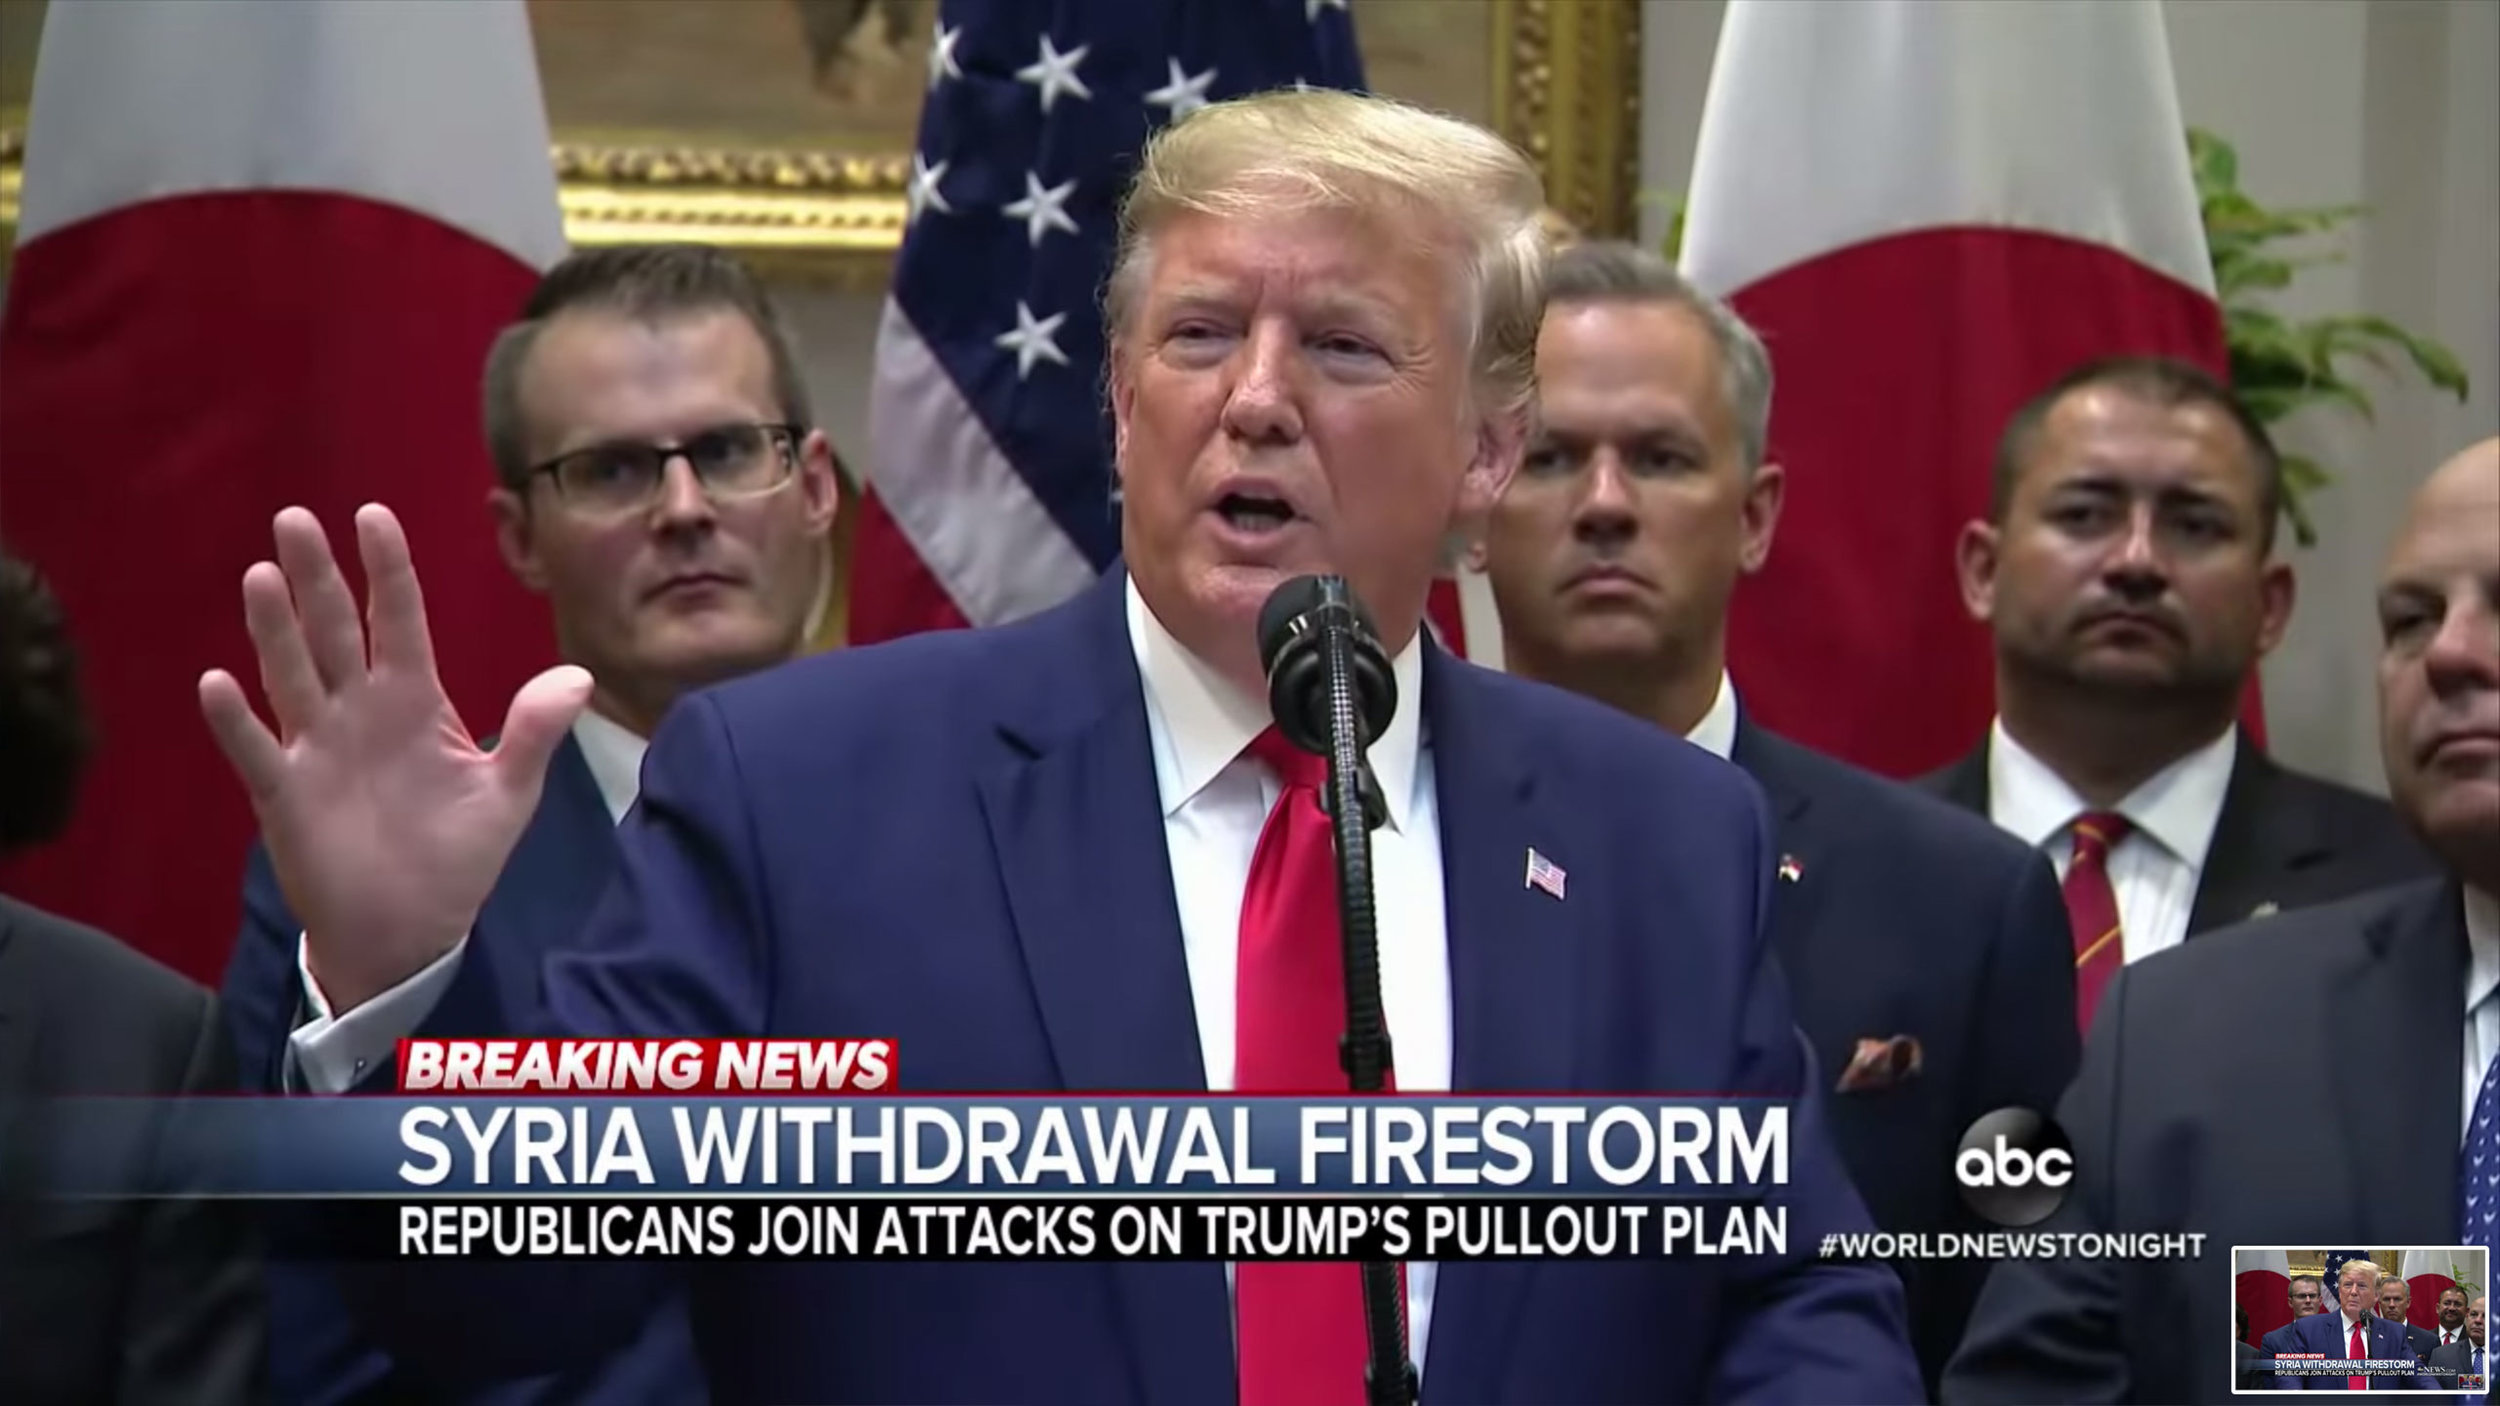 Screenshot of President Trump from  ABC News  propaganda against Syria's pullout